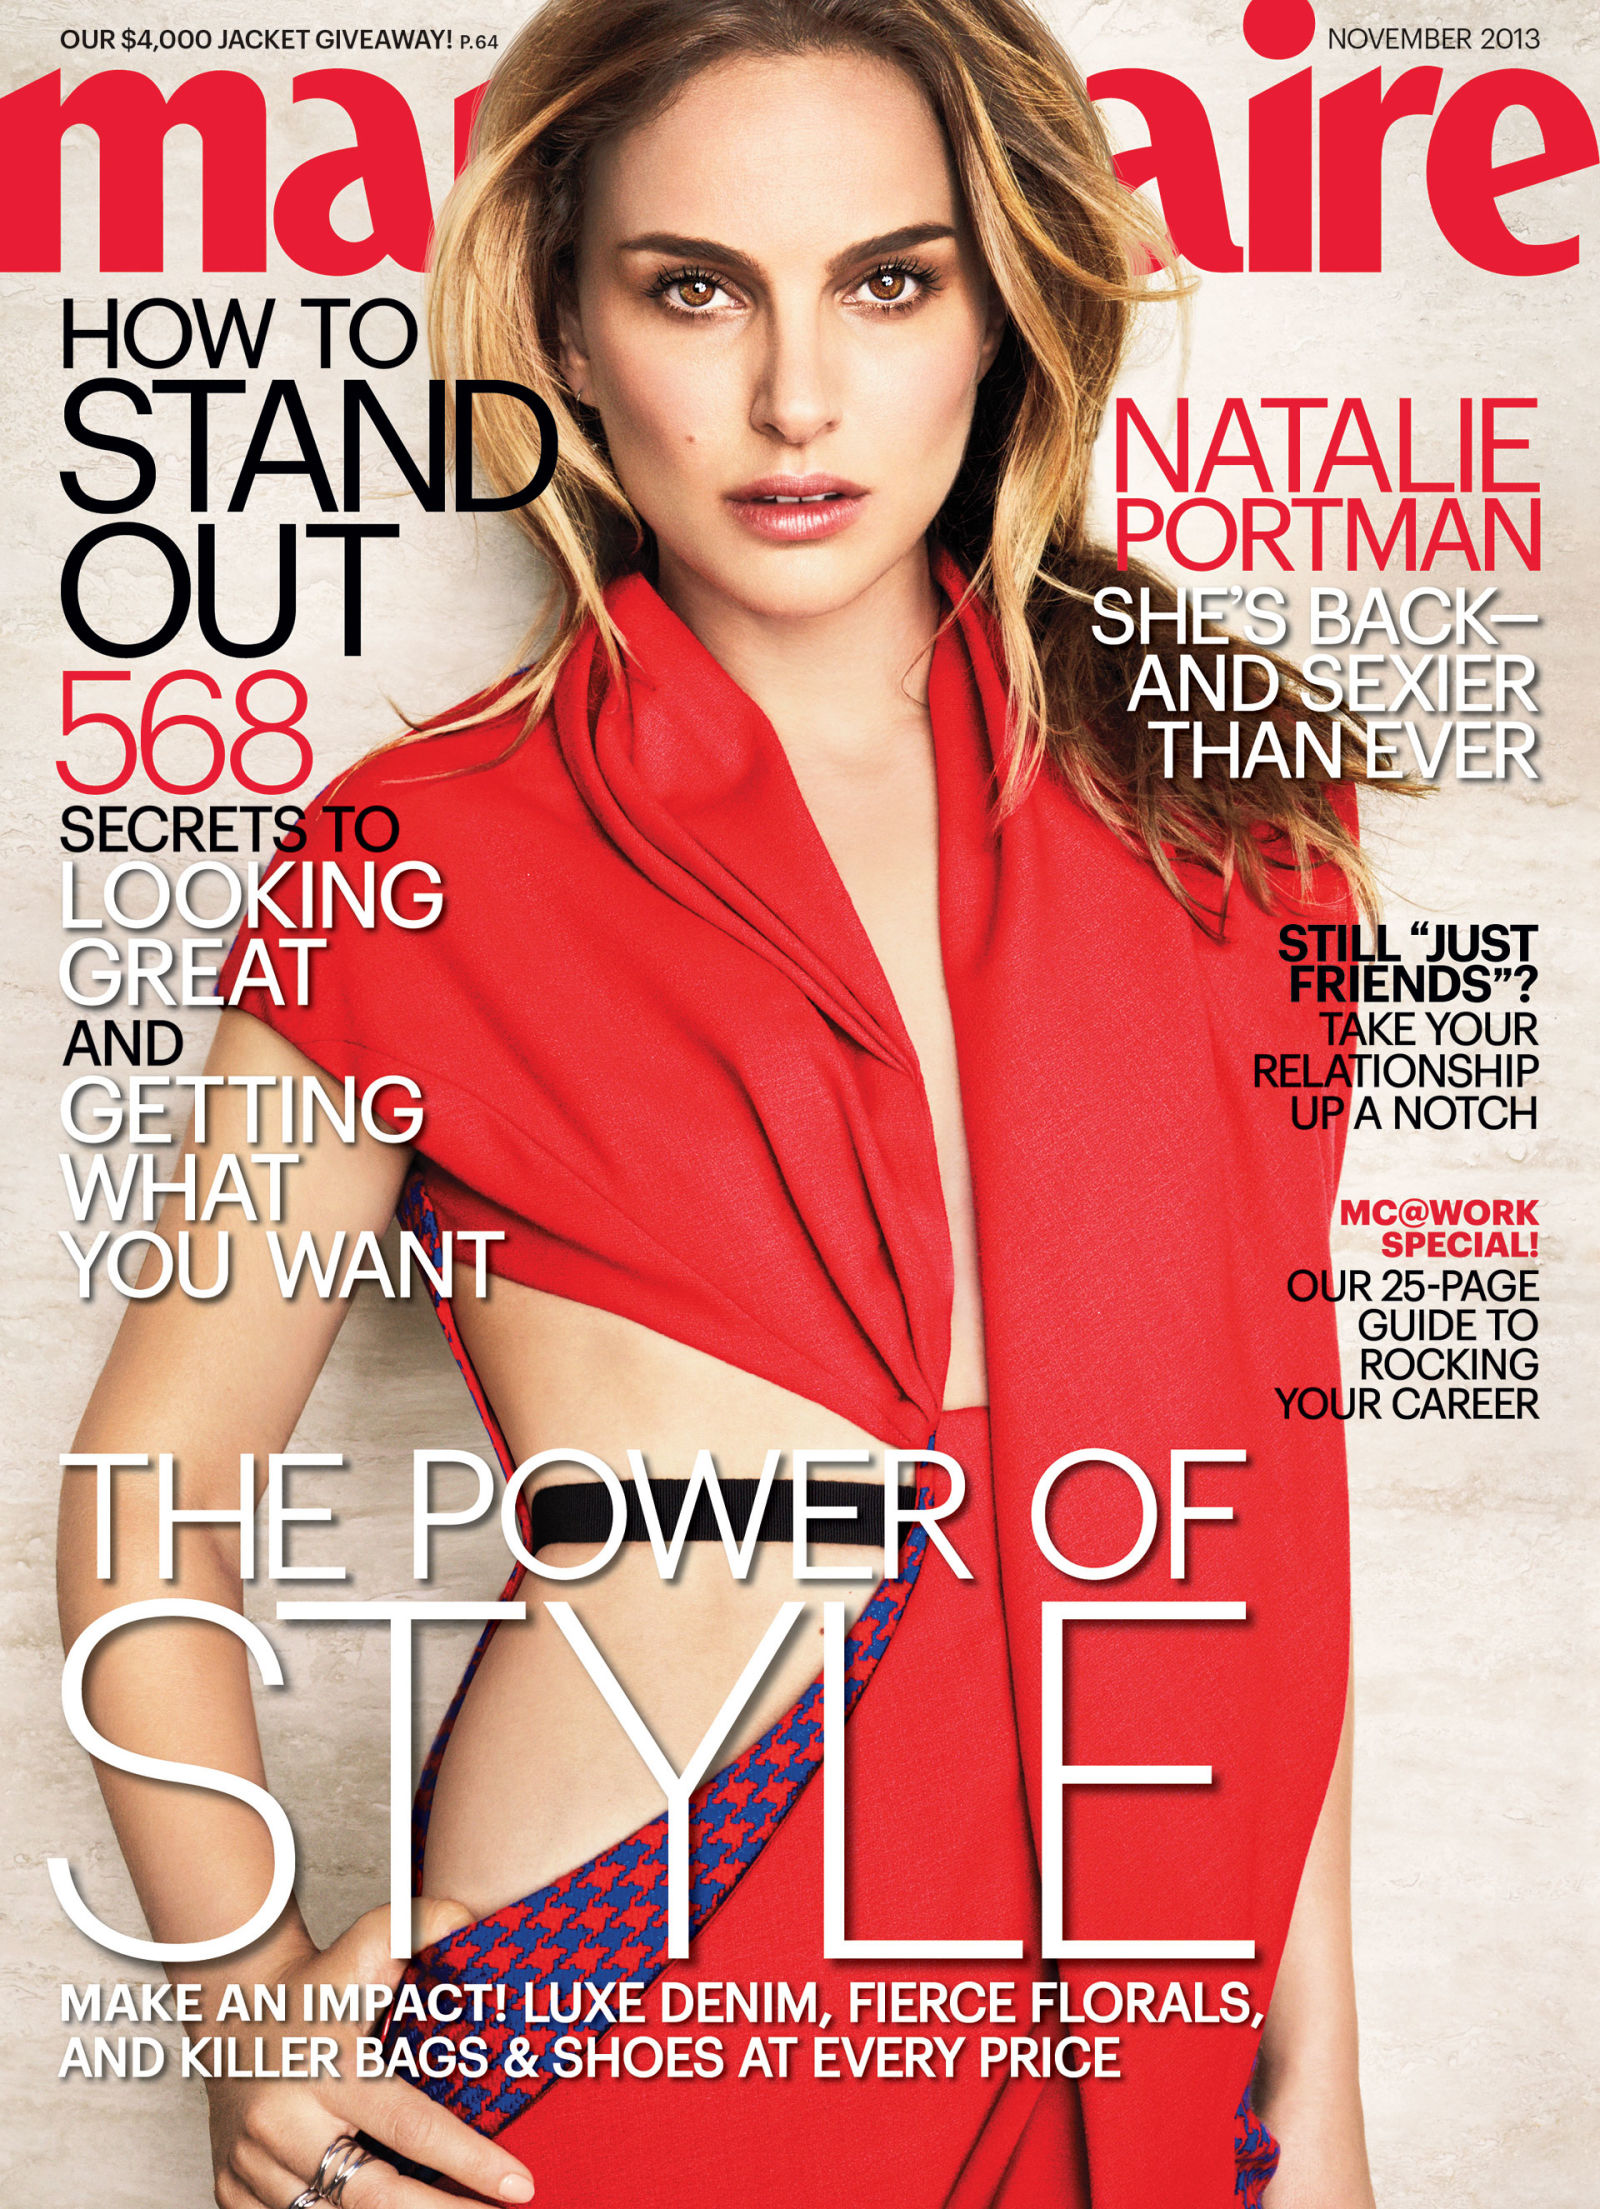 Beautiful Academy Award Winning Actress Natalie Portman Modeling For The Cover Of Marie Claire Modeling As One Of The Highest Paid Actresses In The World.